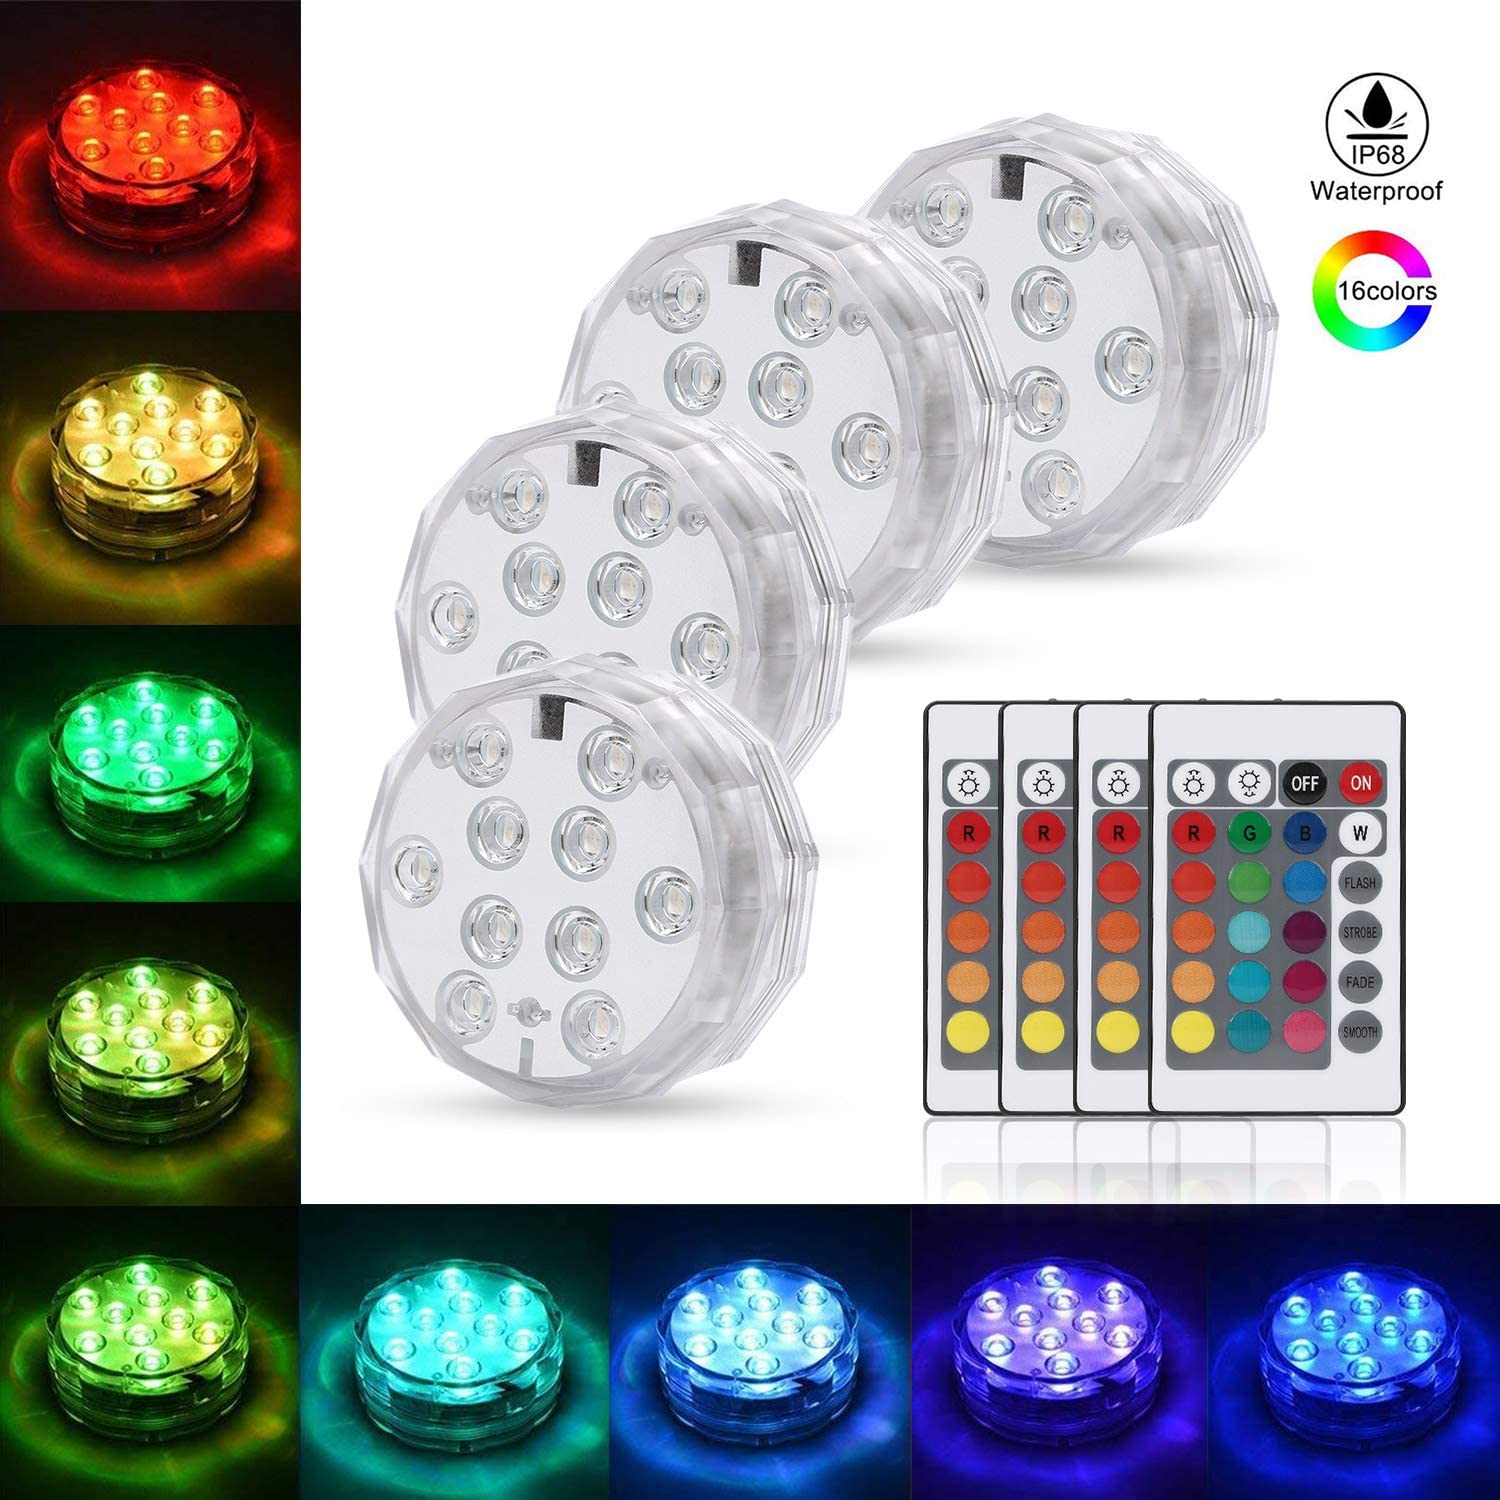 Submersible LED Light, LEDGLE Underwater Light Battery Operated Multi Color Changing Waterproof Decorated IP68 Waterproof LED Lights with Remote Control for Aquarium, Hot Tub, Vase Base, Party(4 Pack)